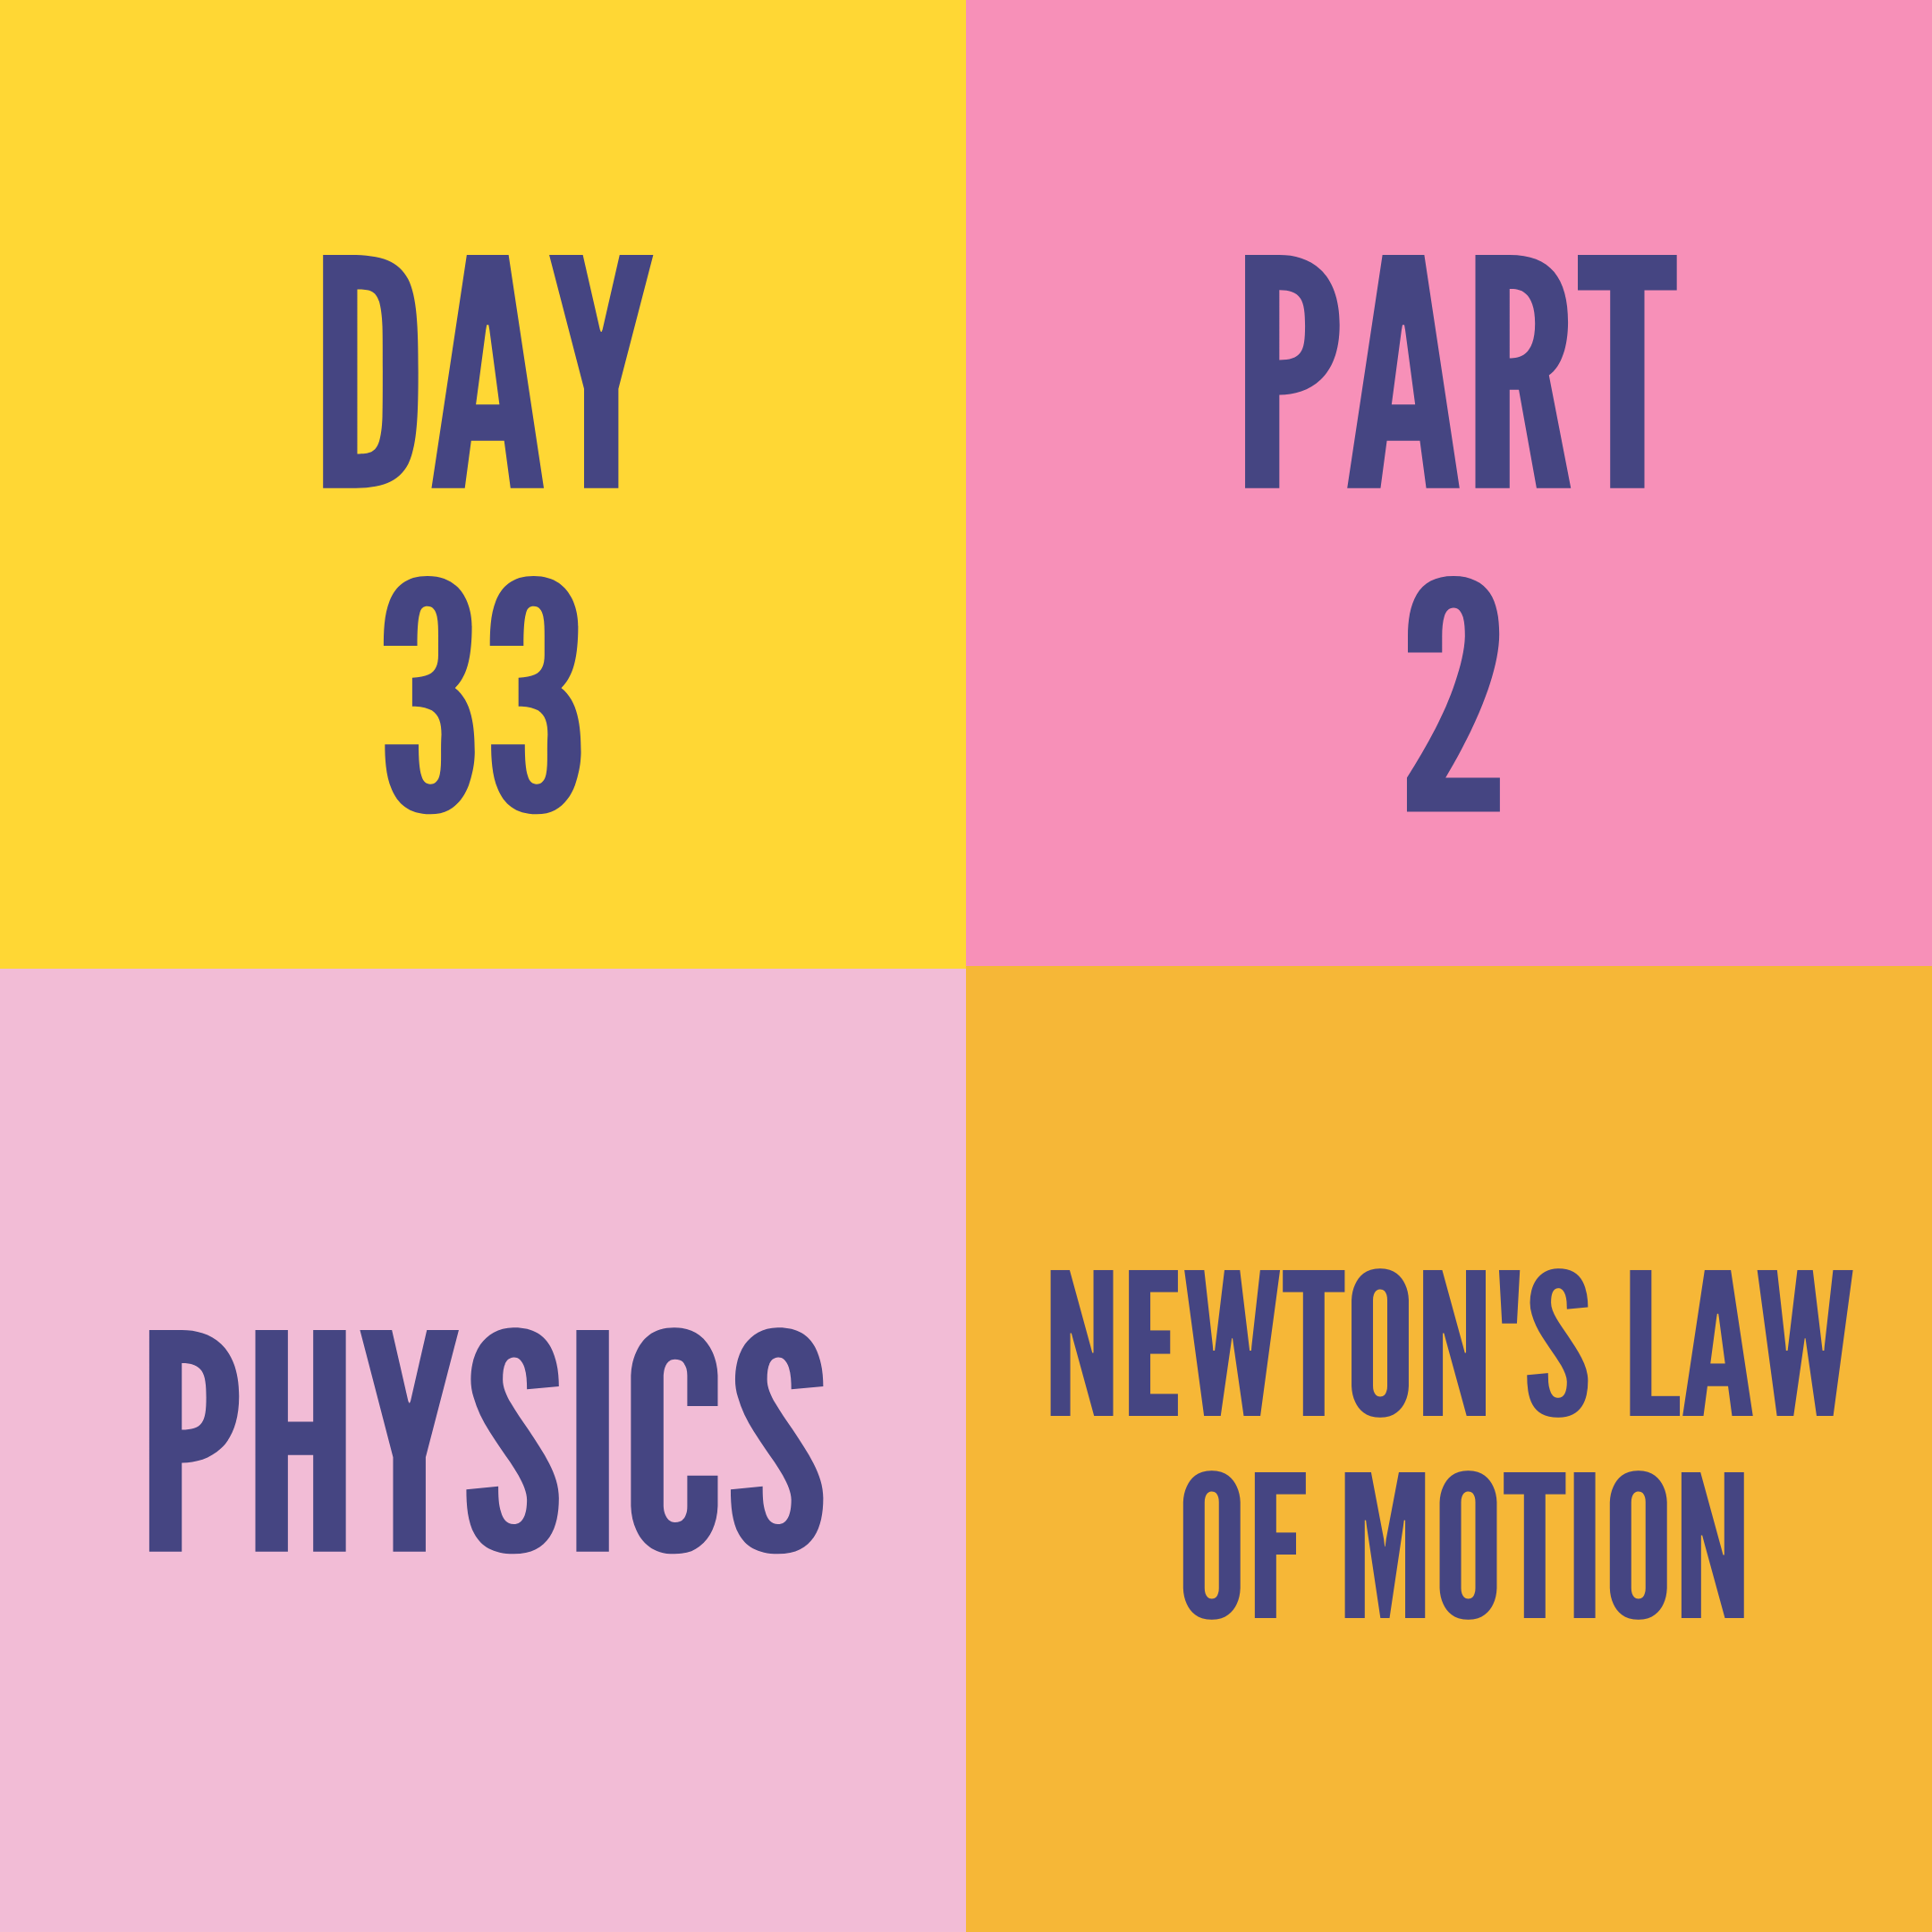 DAY-33 PART-2 NEWTON'S LAW OF MOTION